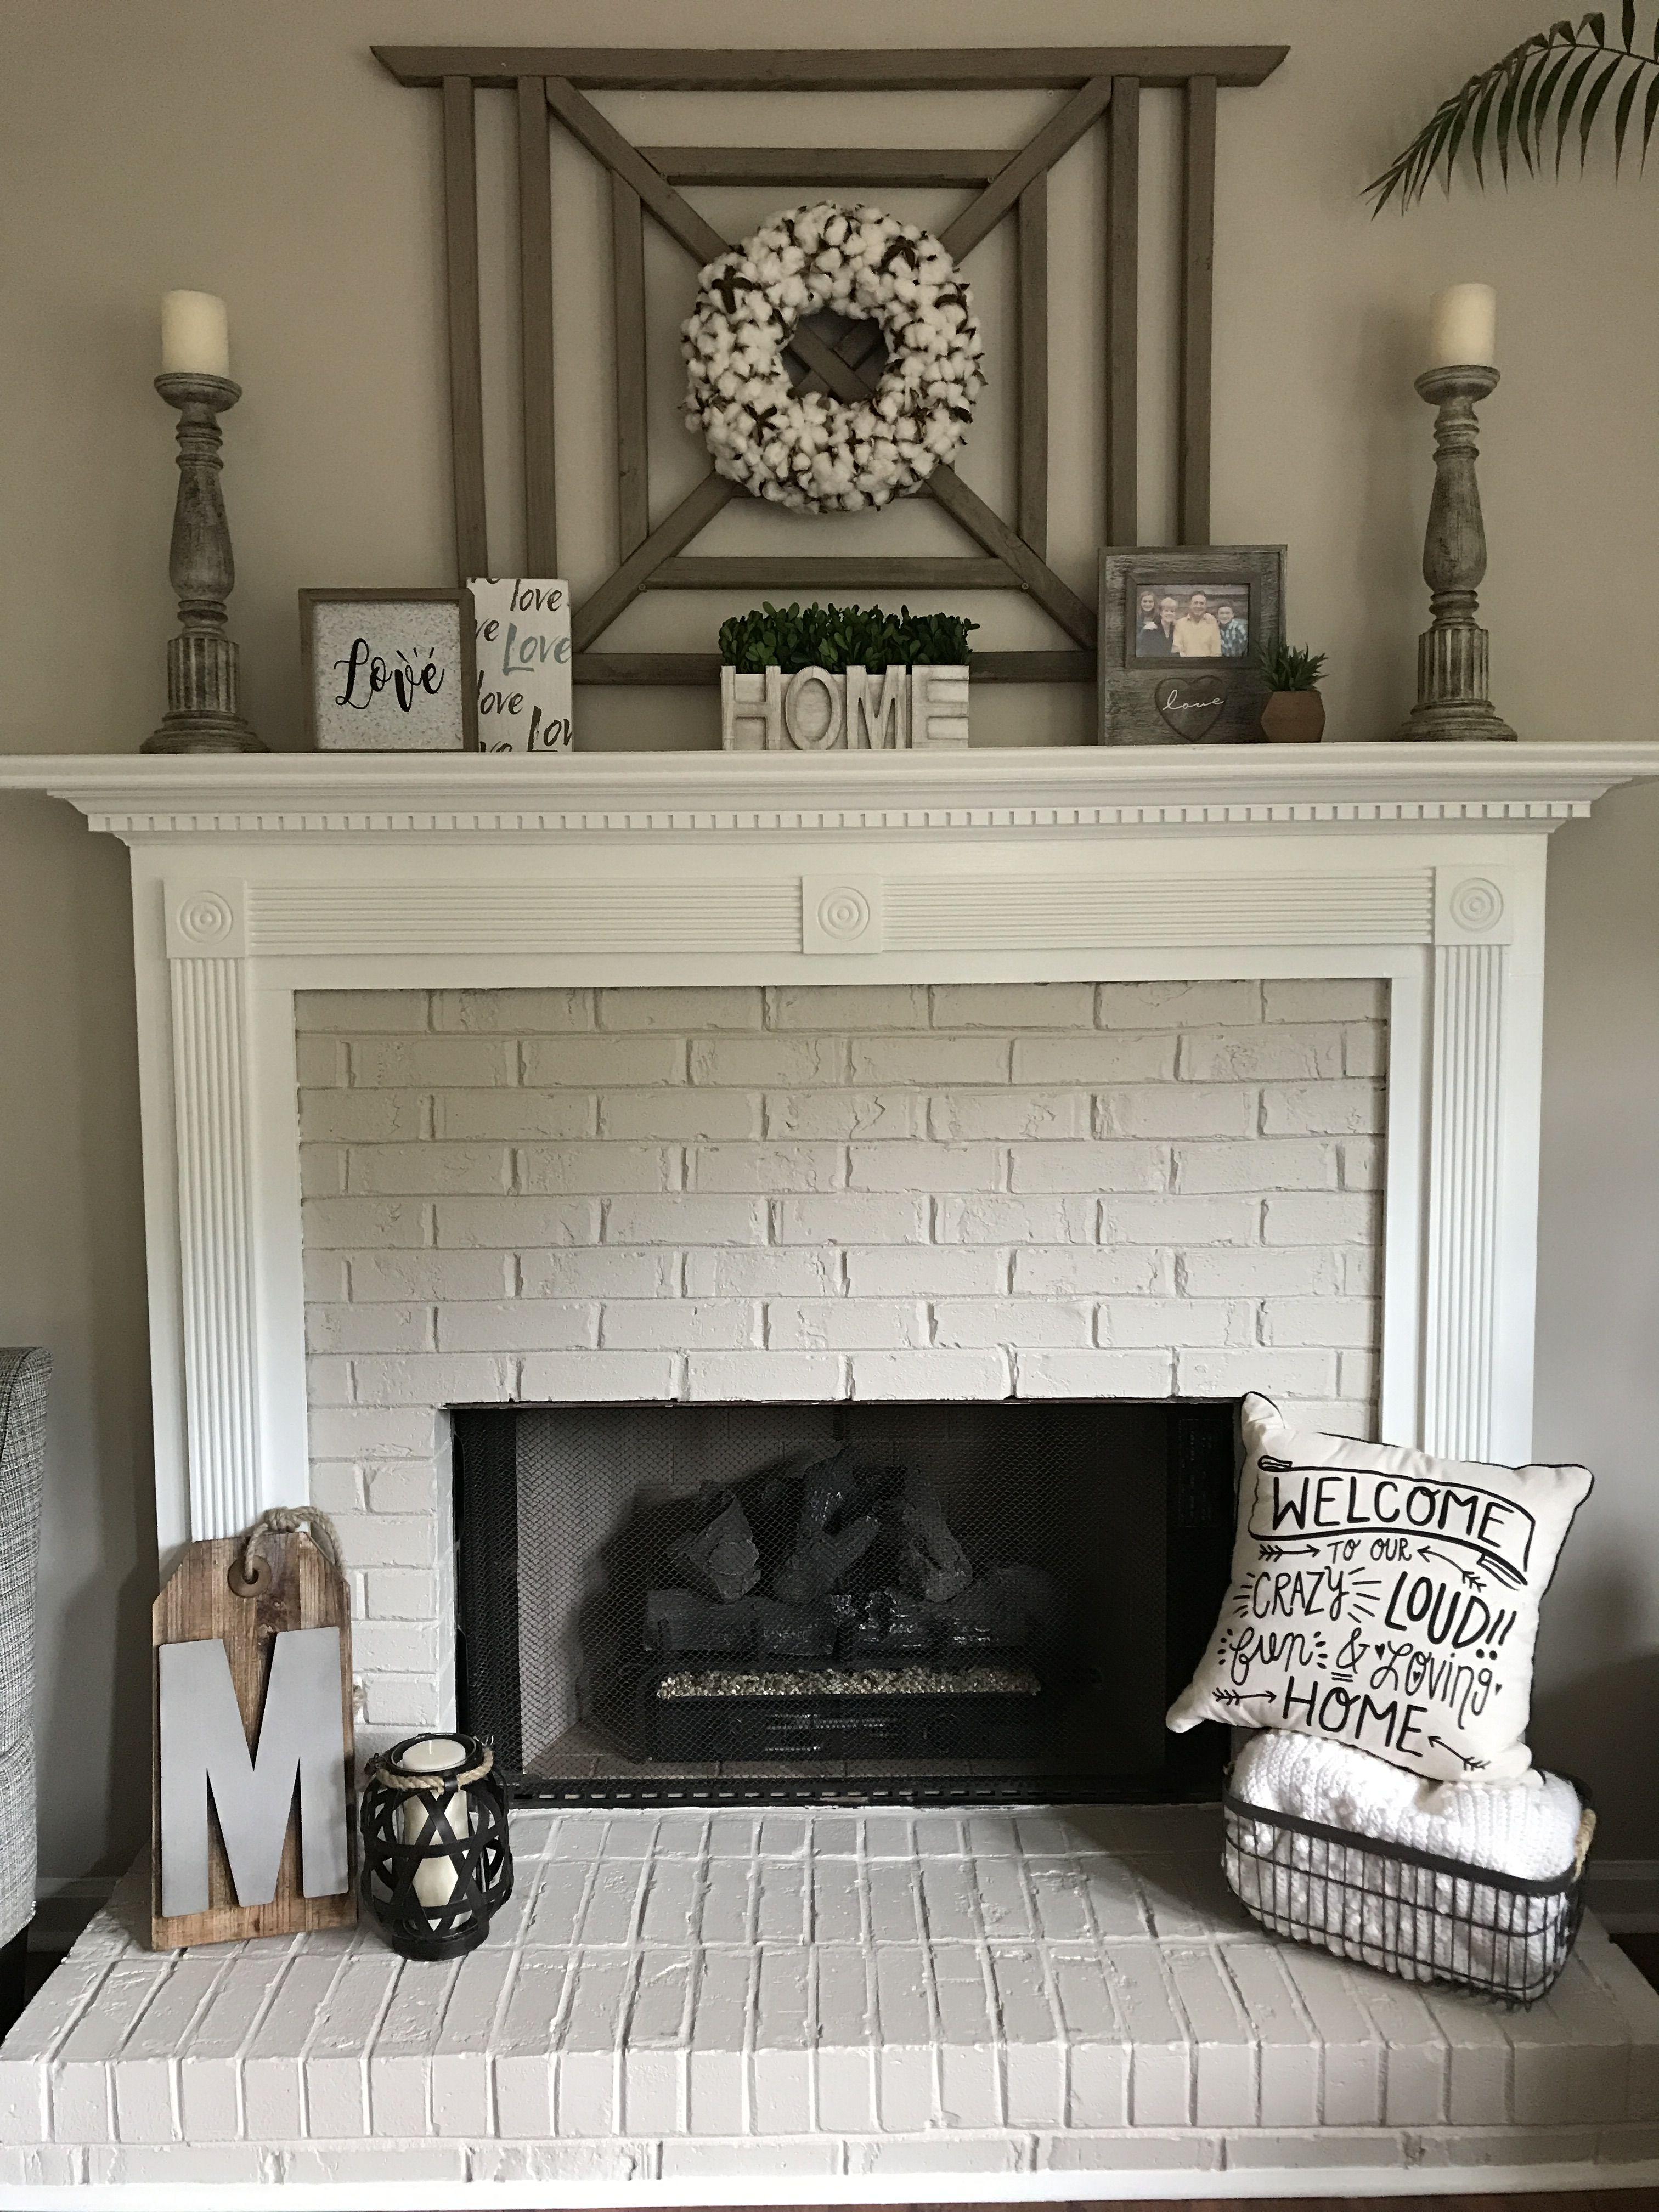 Best Painted Brick Fireplace And Mantle With Cotton Wreath This Month